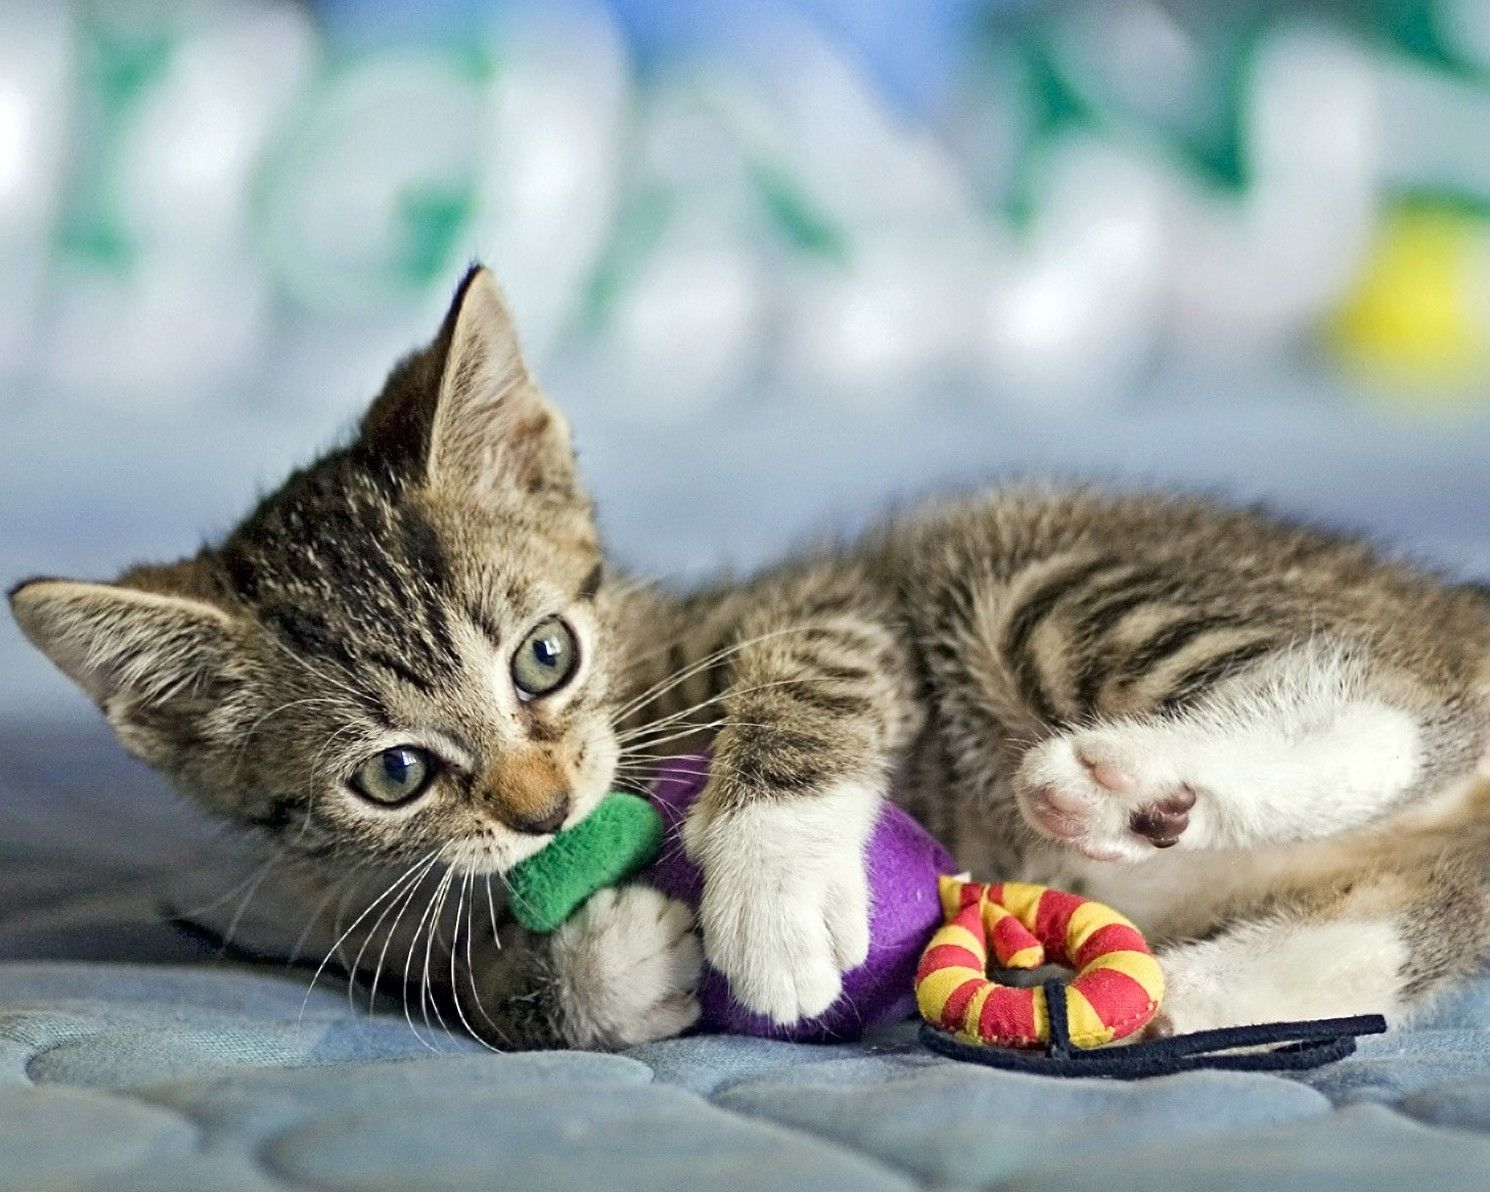 Cutest Kittens 8x10 GLOSSY Photo Picture Cat 8 x 10